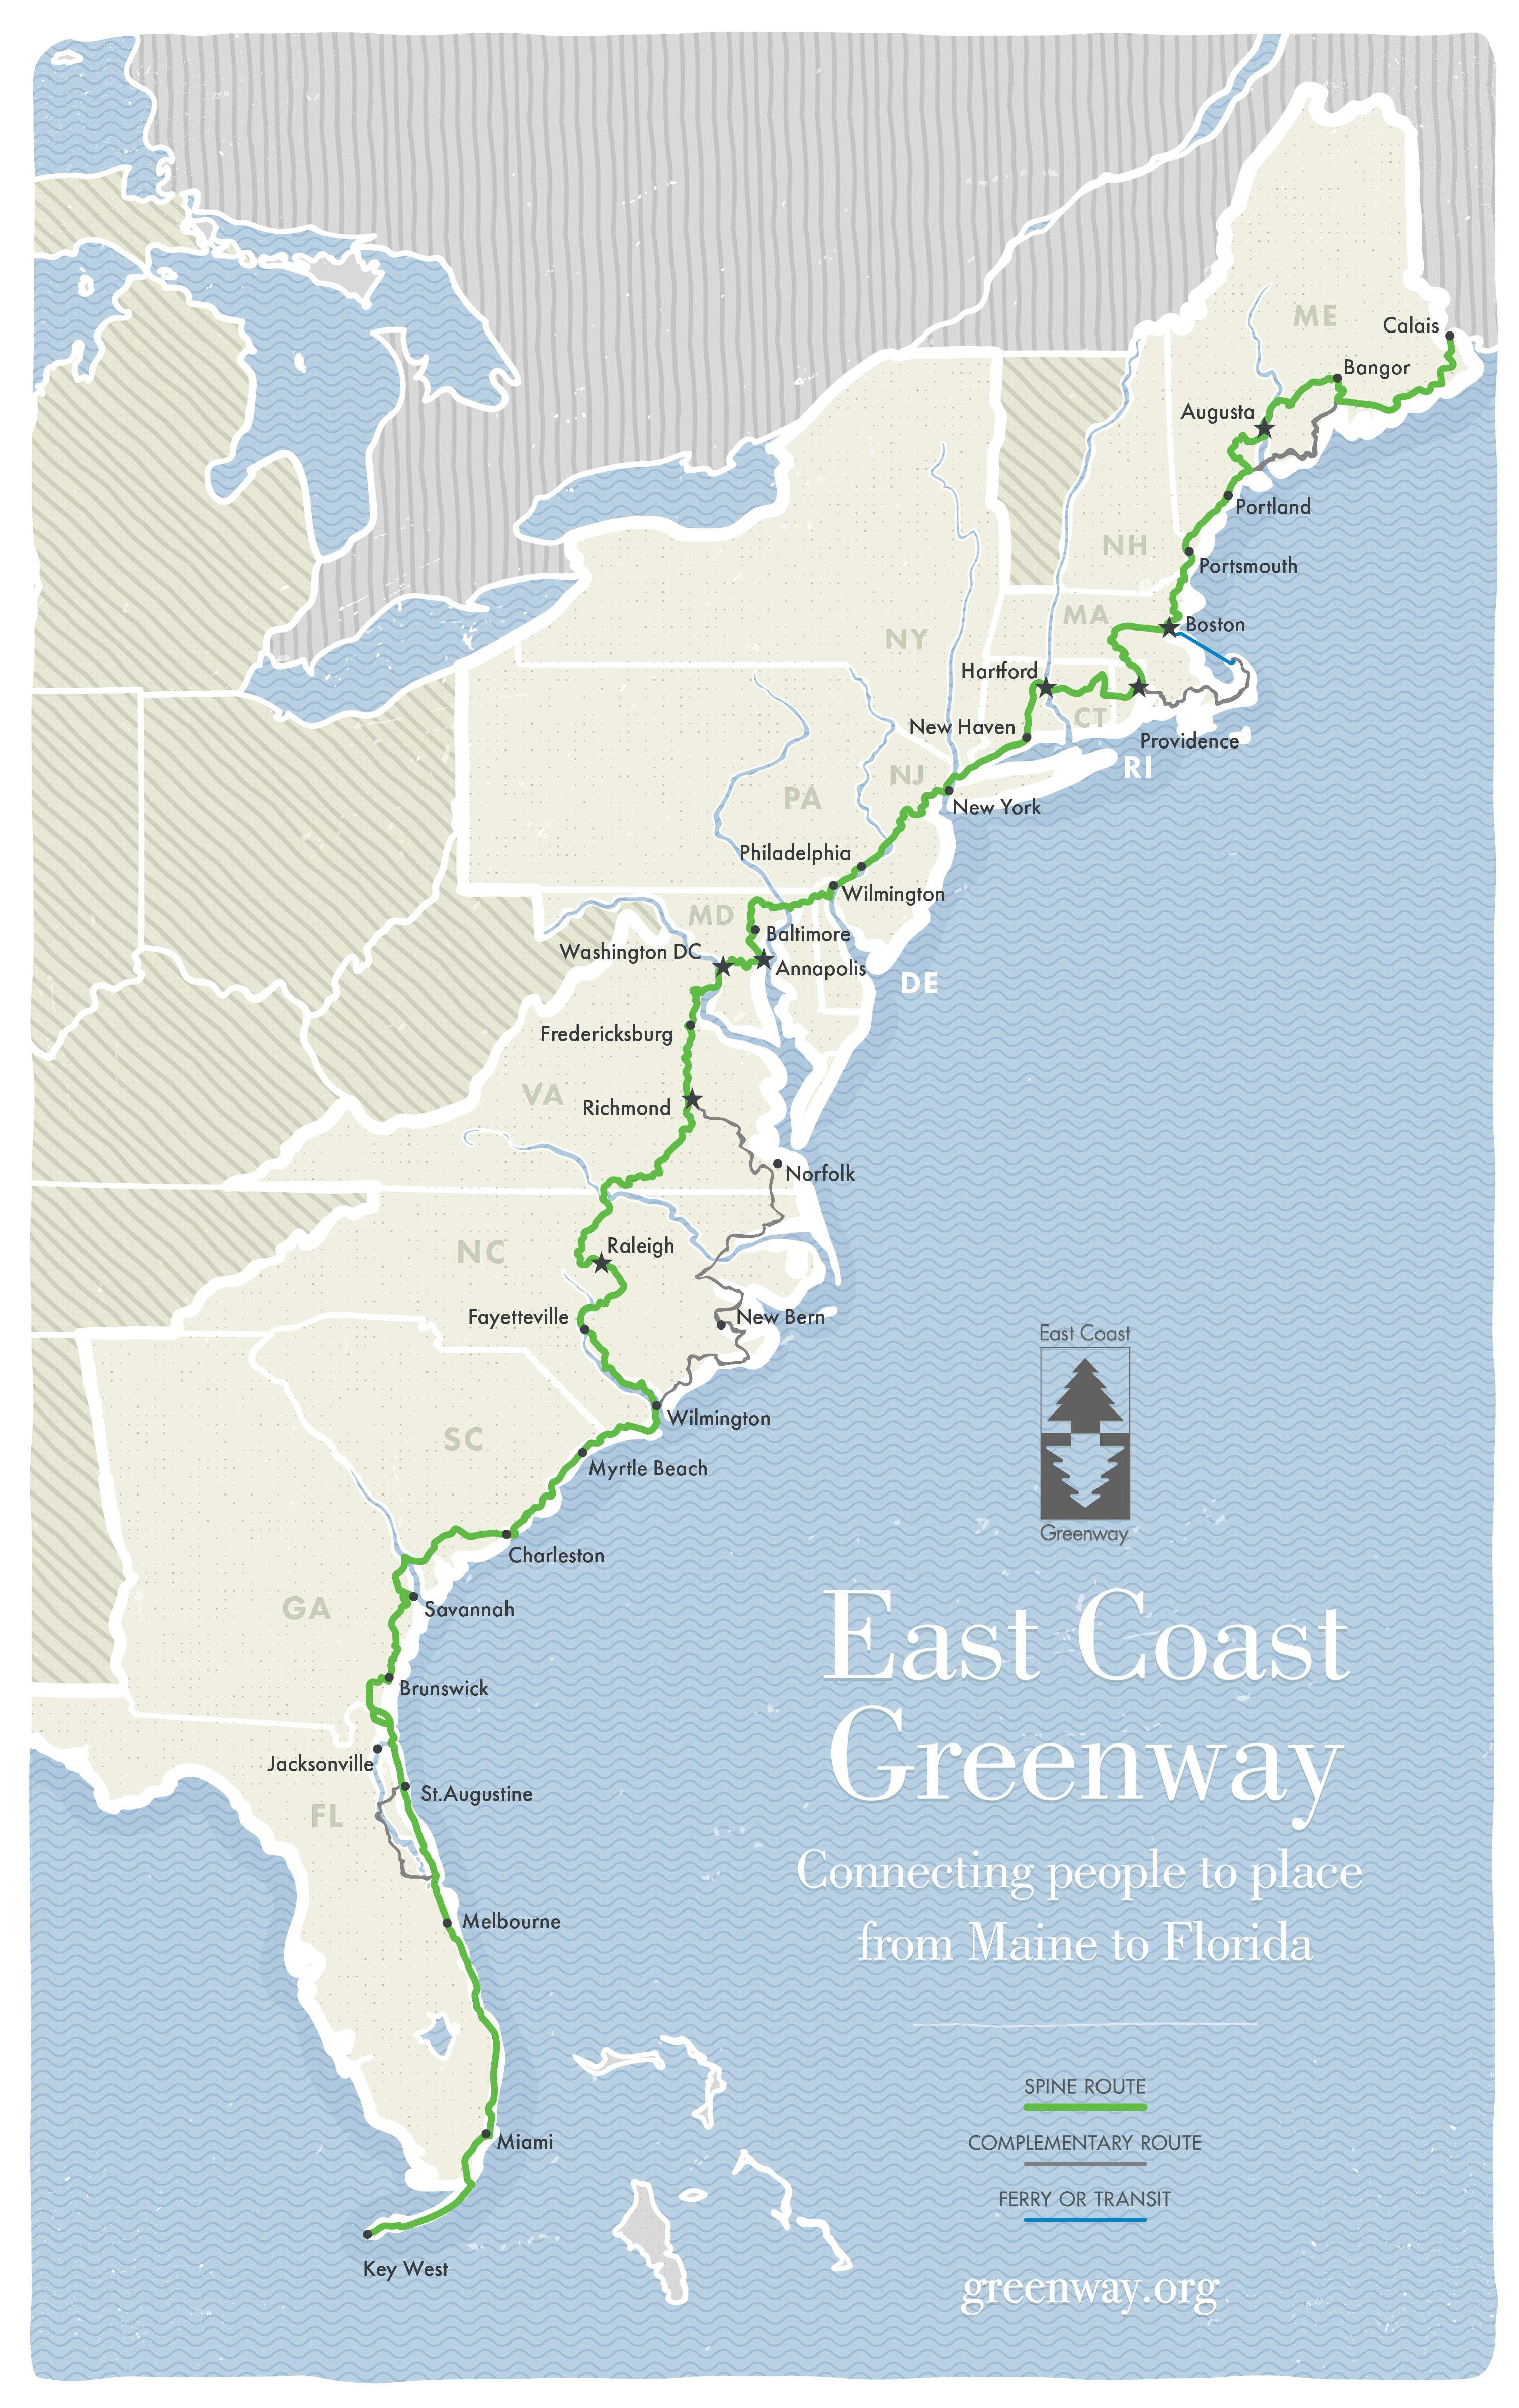 East Coast Greenway: Hike or bike your way from Maine to Florida